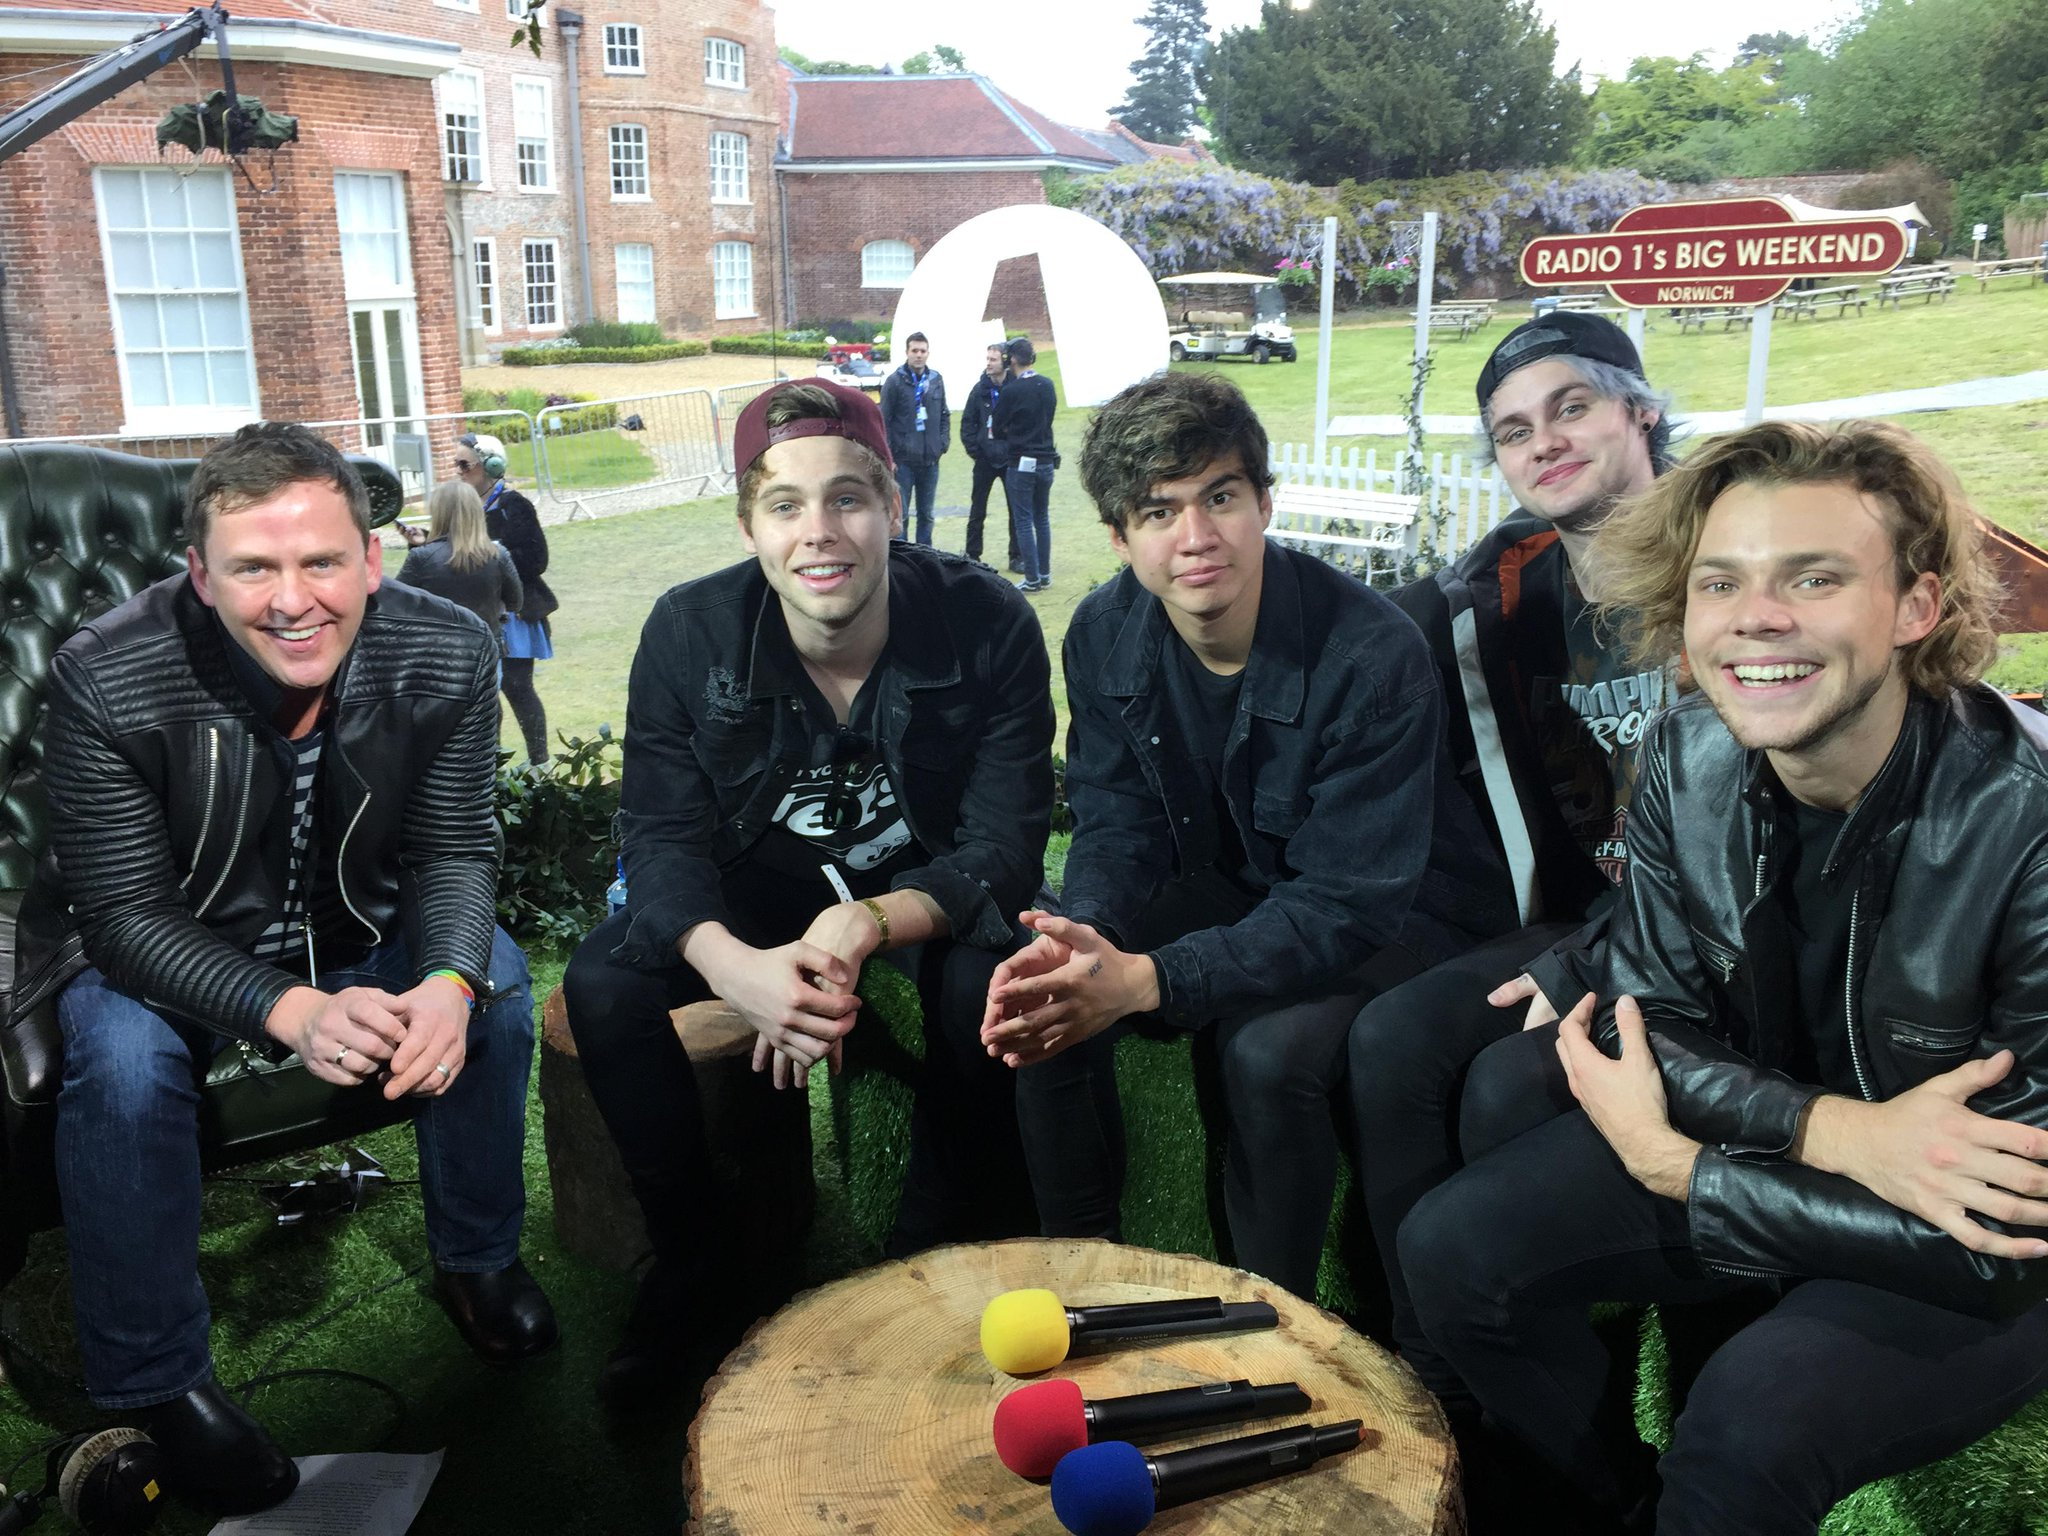 RT @BBCR1: At 3pm today, you'll hear @scott_mills' full #BigWeekend interview with @5SOS http://t.co/48RuyAdouO #5SOSandScott http://t.co/r…